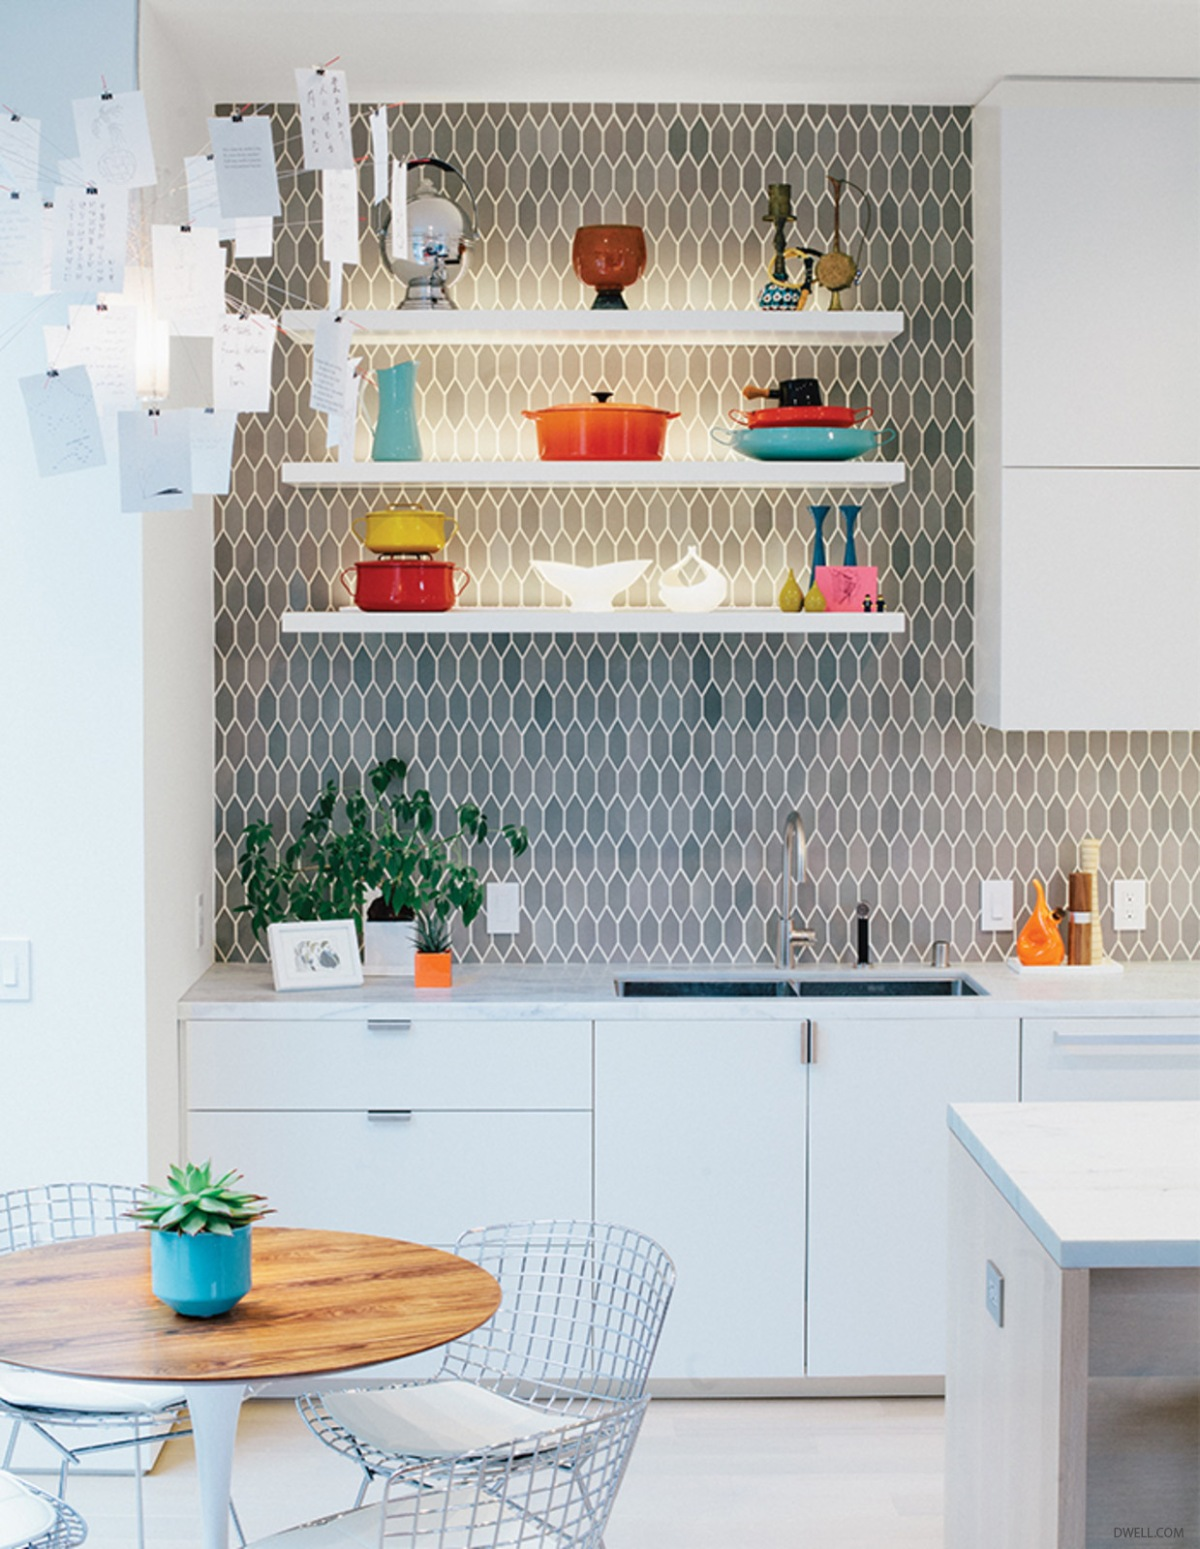 dwell_heath ceramics backsplash.jpg